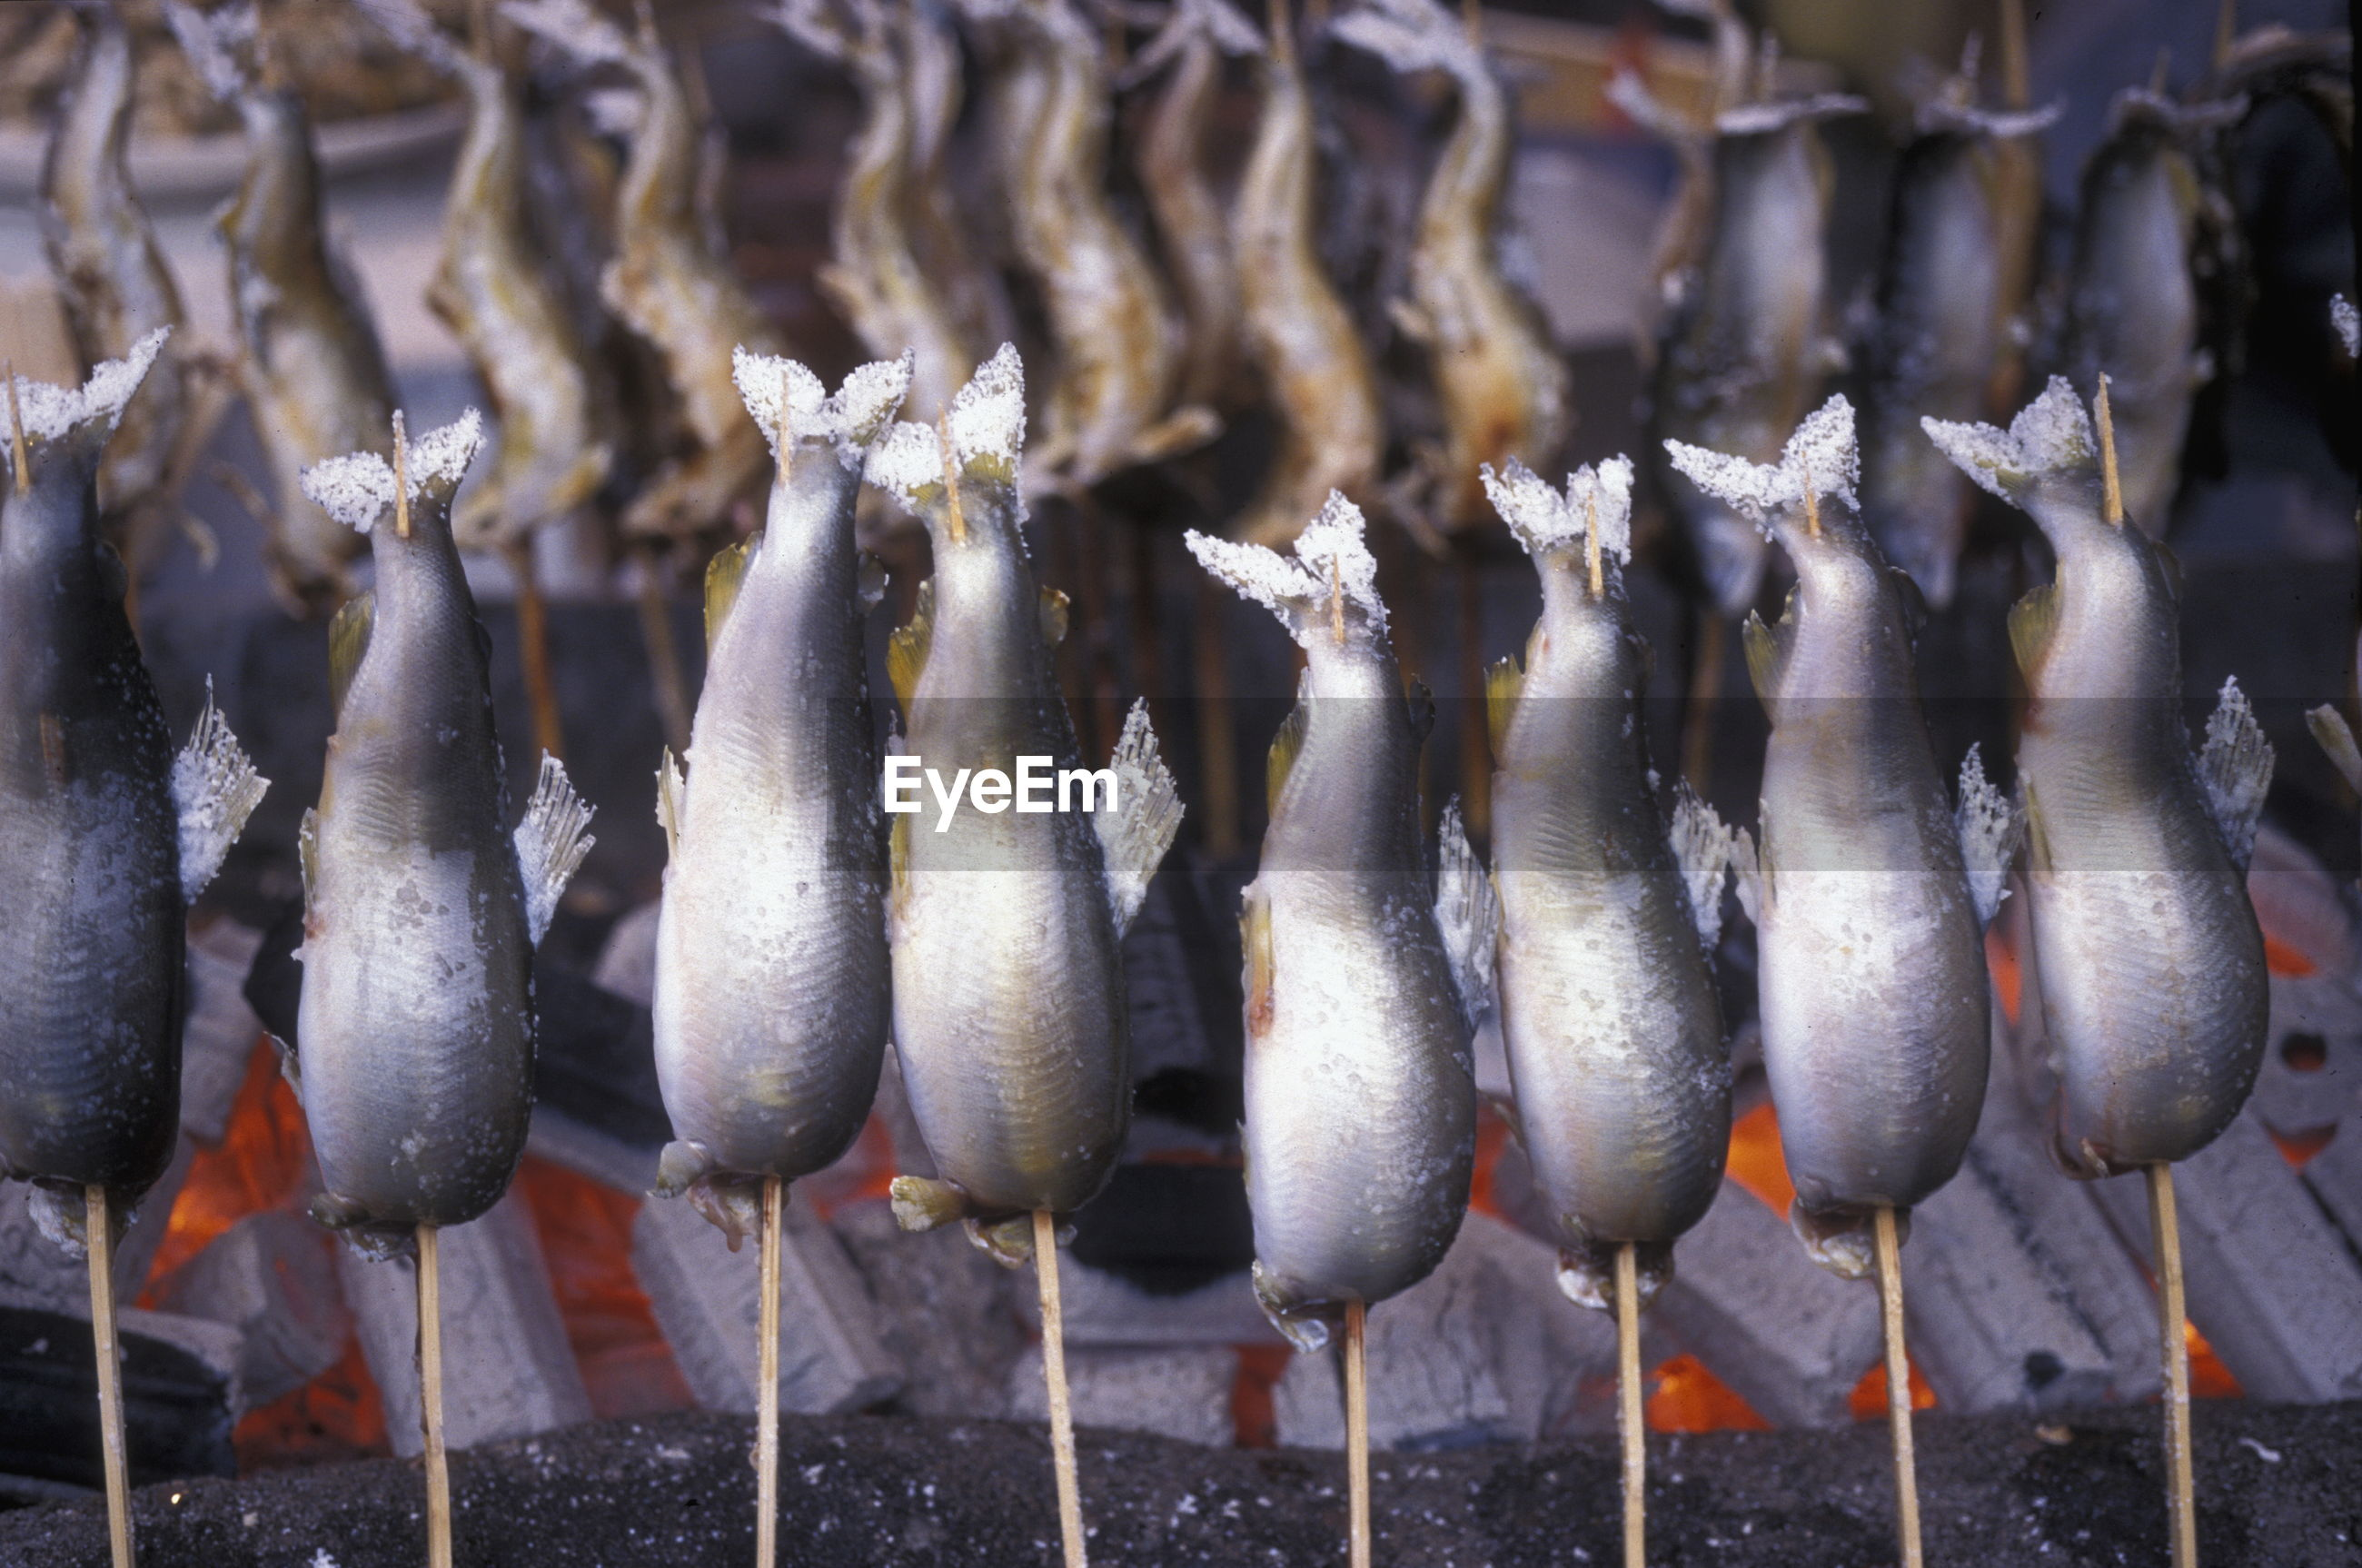 Close-up of fish on skewers over grill